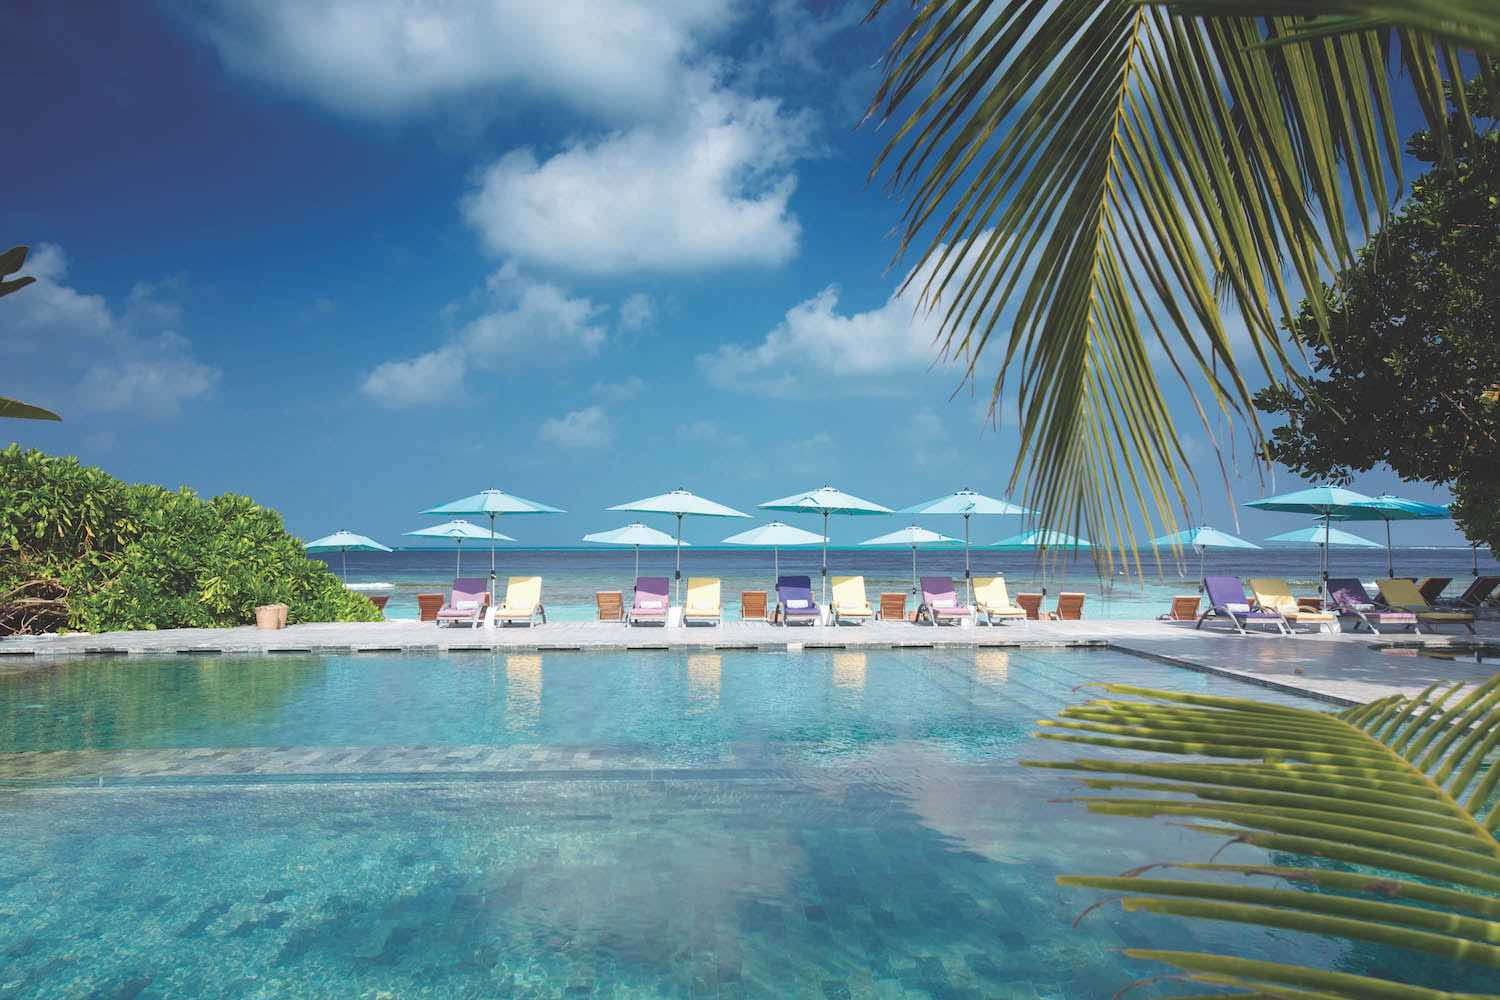 maldives-oblu-by-atmosphere-at-helengeli-helens-pool-bar-view-holiday-honeymoon-vacation-invite-to-paradise.jpg